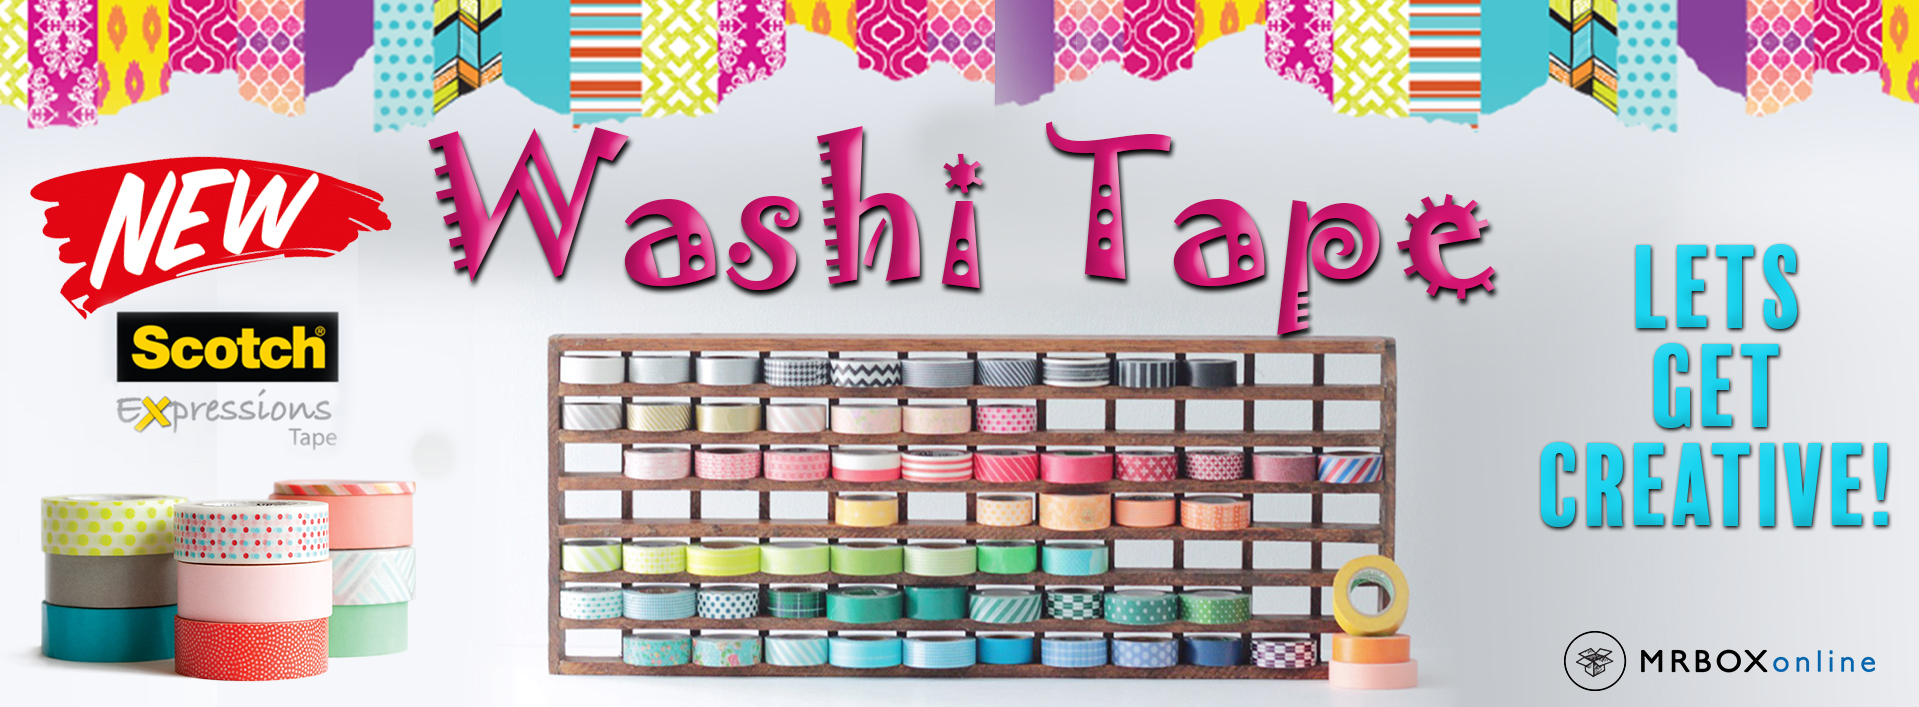 NEW Washi Tape!